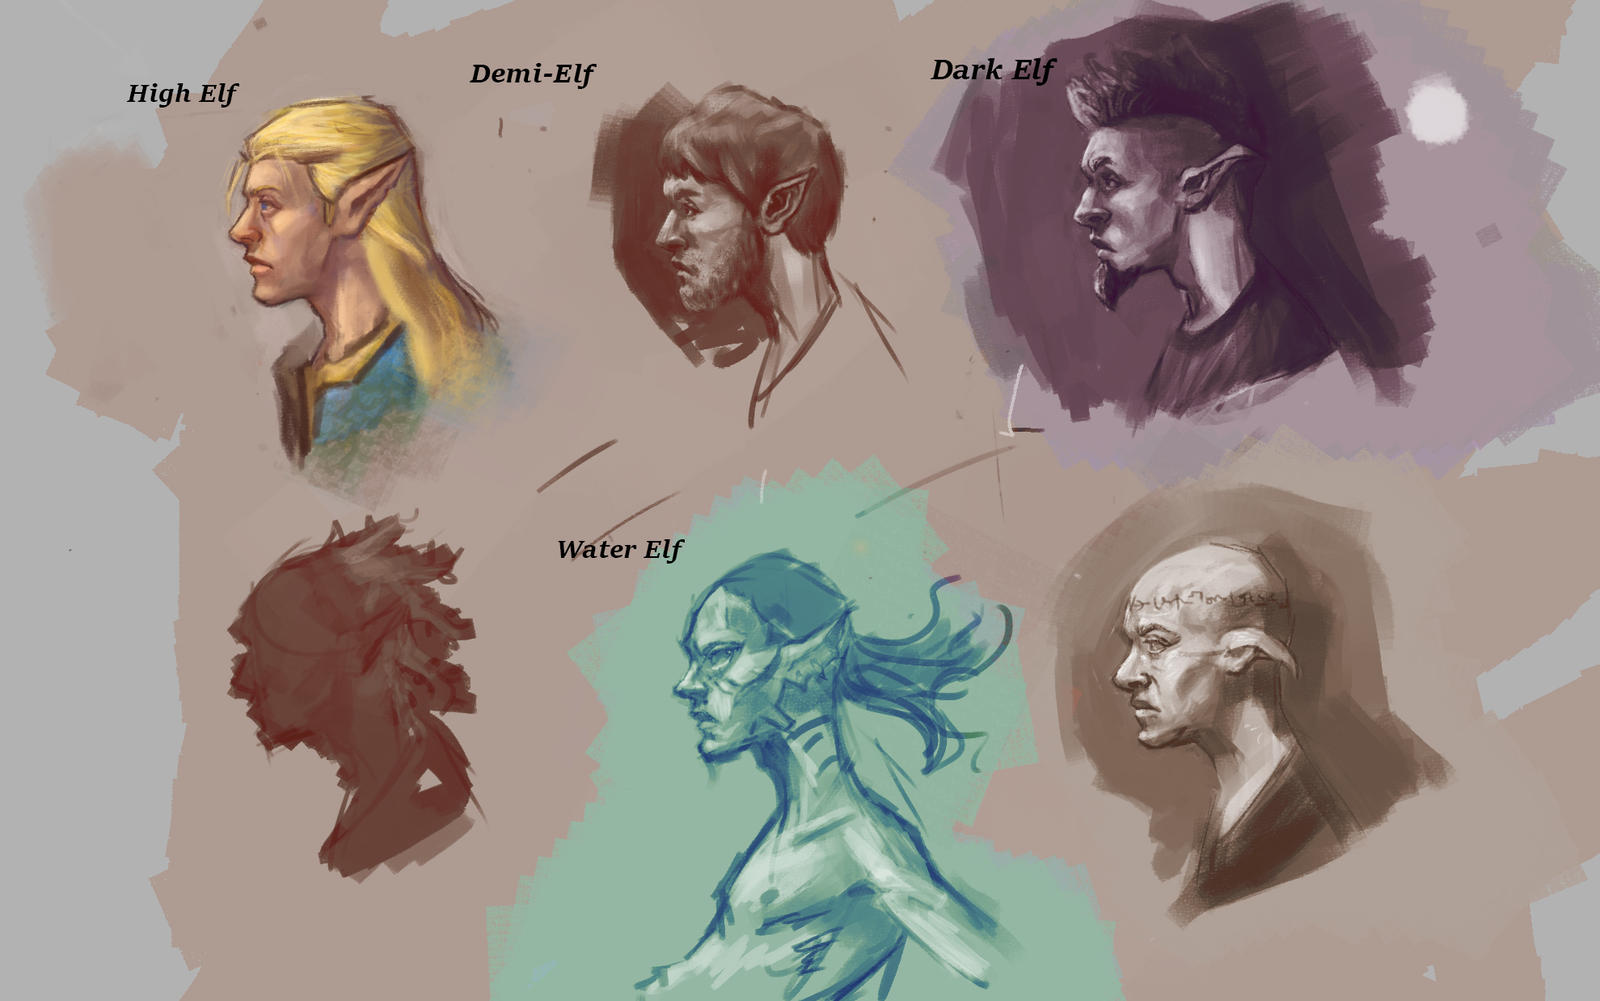 Elven races by Rogi29 on DeviantArt